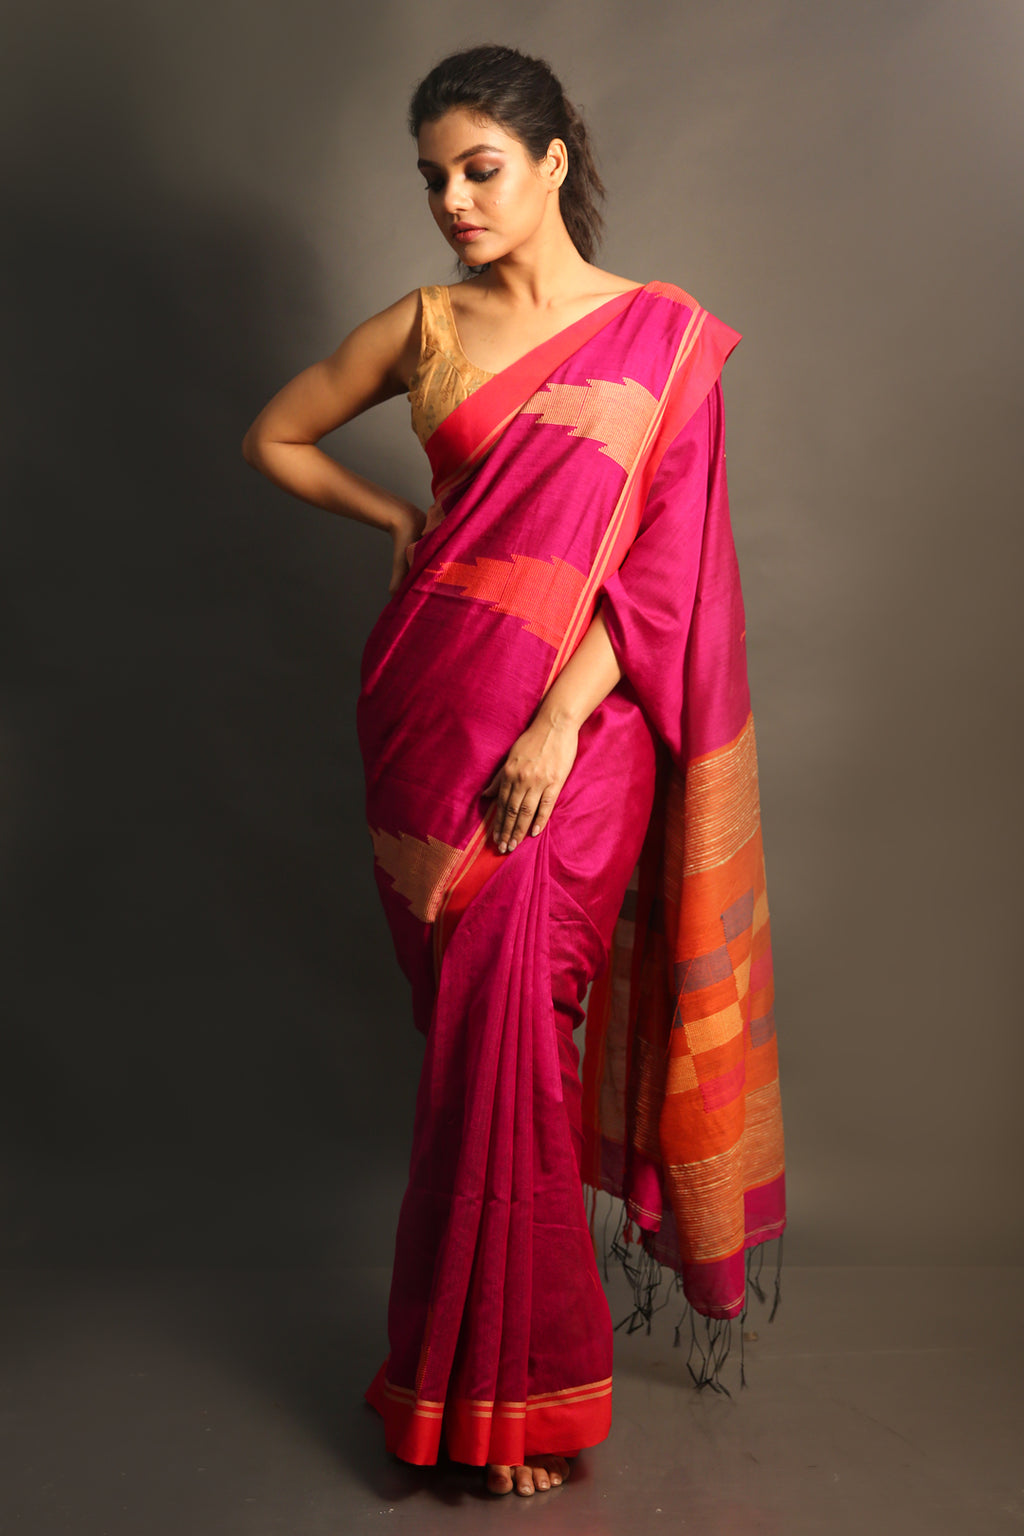 This Fuchsia Handloom Saree Is Crafted In Cotton, Features Thread Tassel Details On The Pallu And Comes With An Unstitched Blouse Piece. Style This Saree With Statement Accessories And A Pair Of High Heels To Complete The Look - Charukriti.co.in